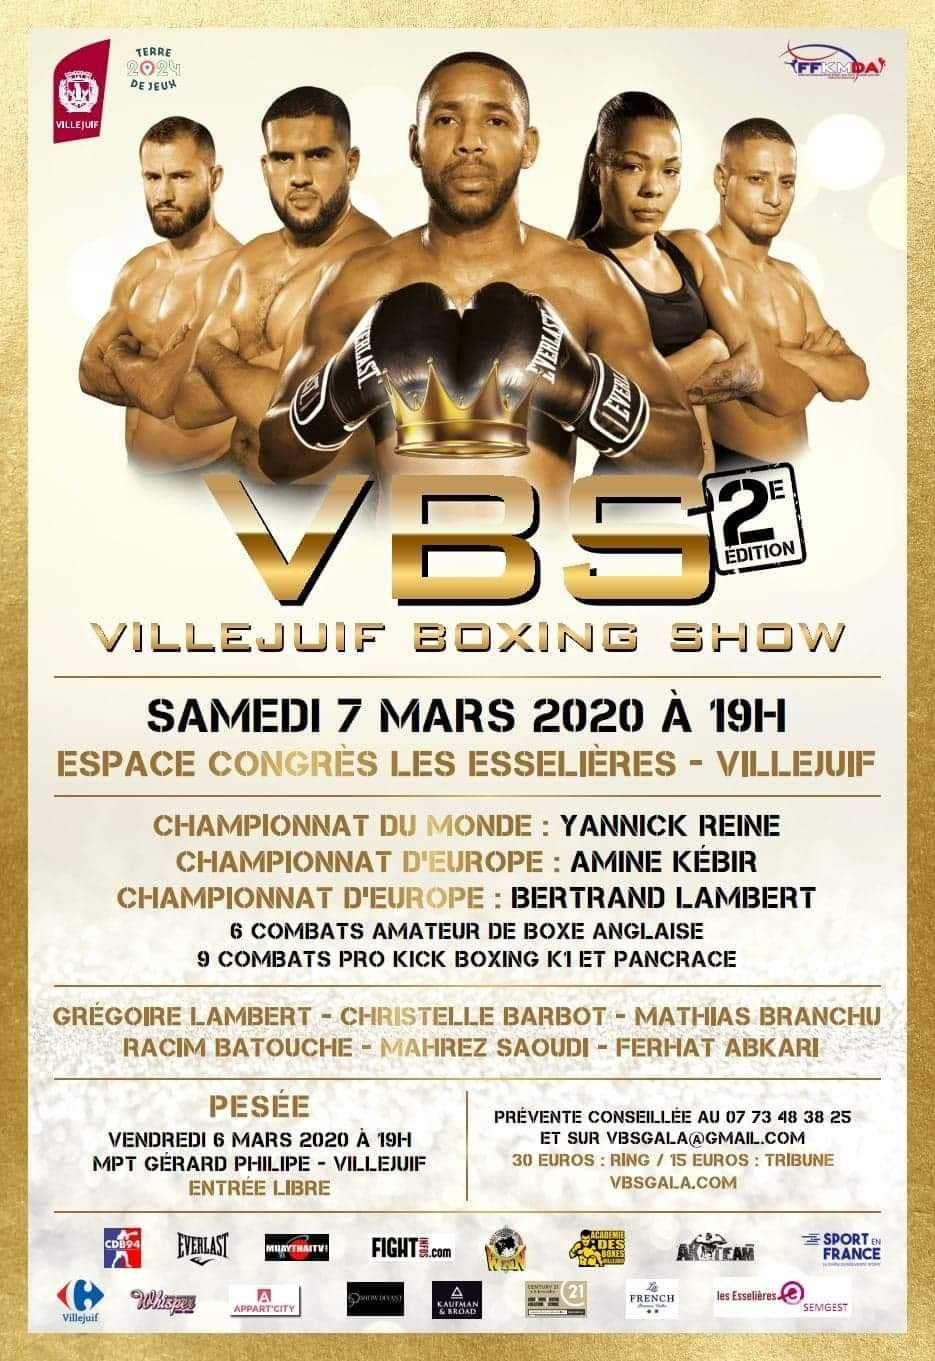 Three WKN titles on the line at Villejuif Boxing Show 2 -